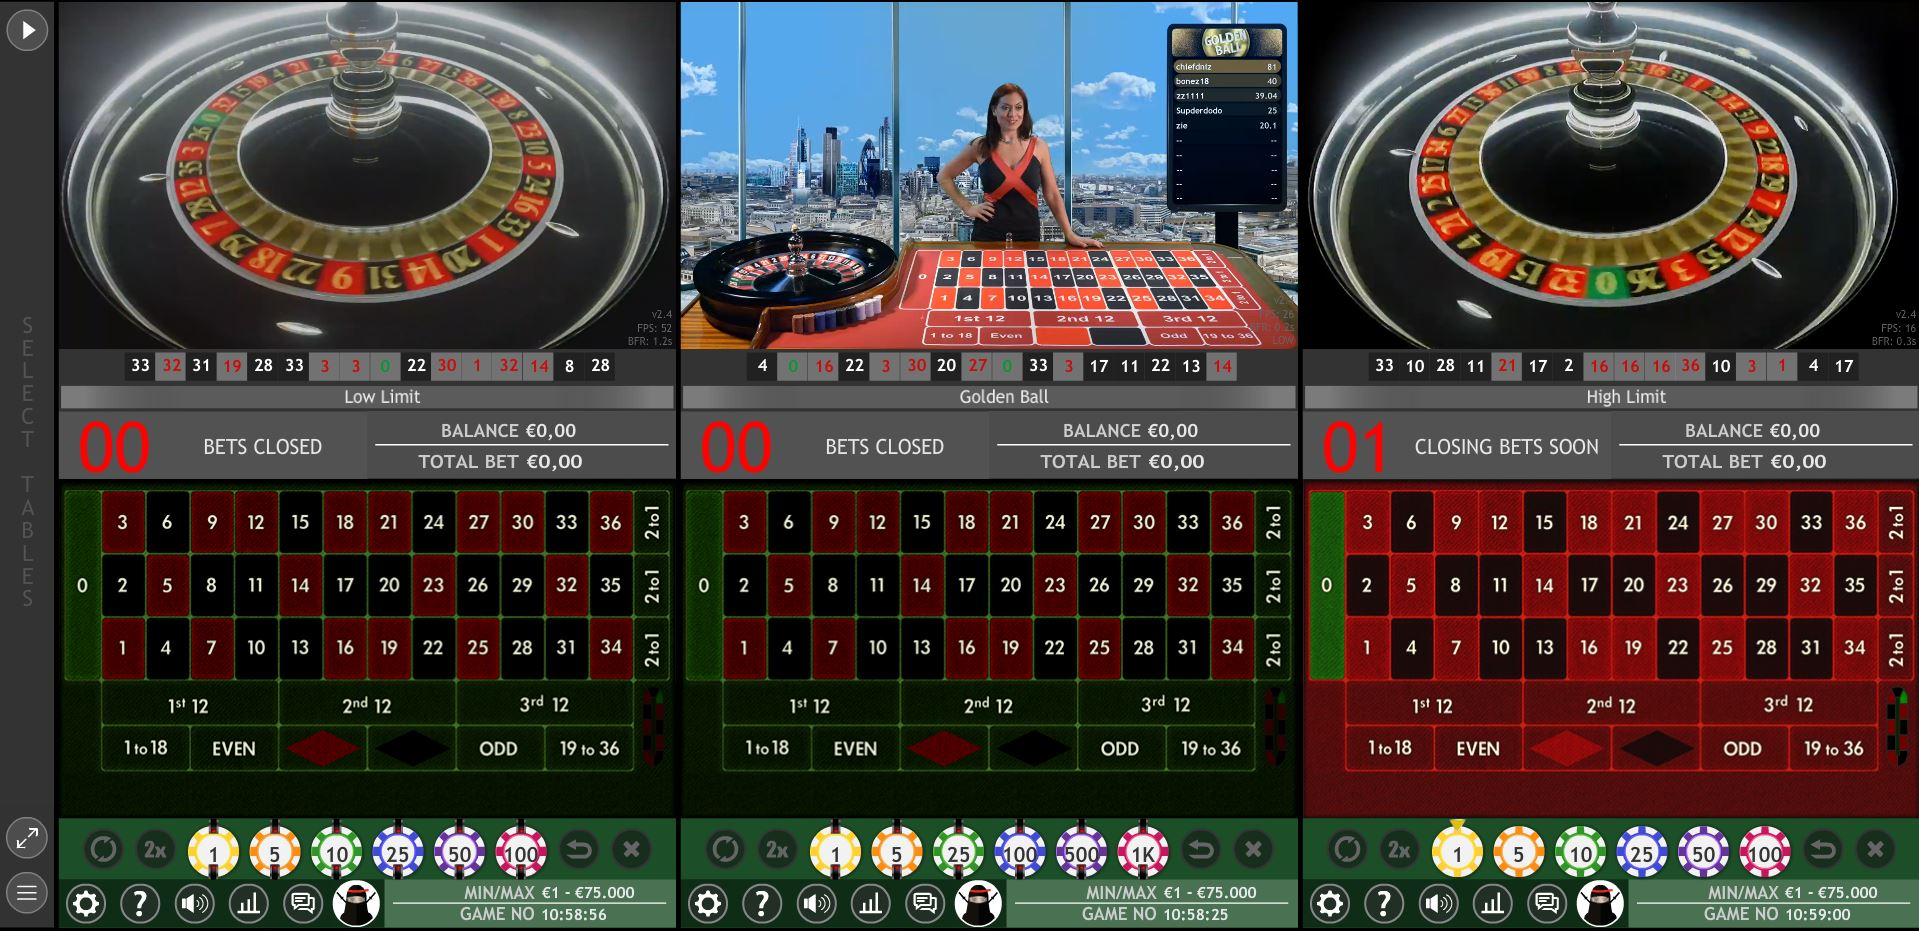 championsbet live casino multitable